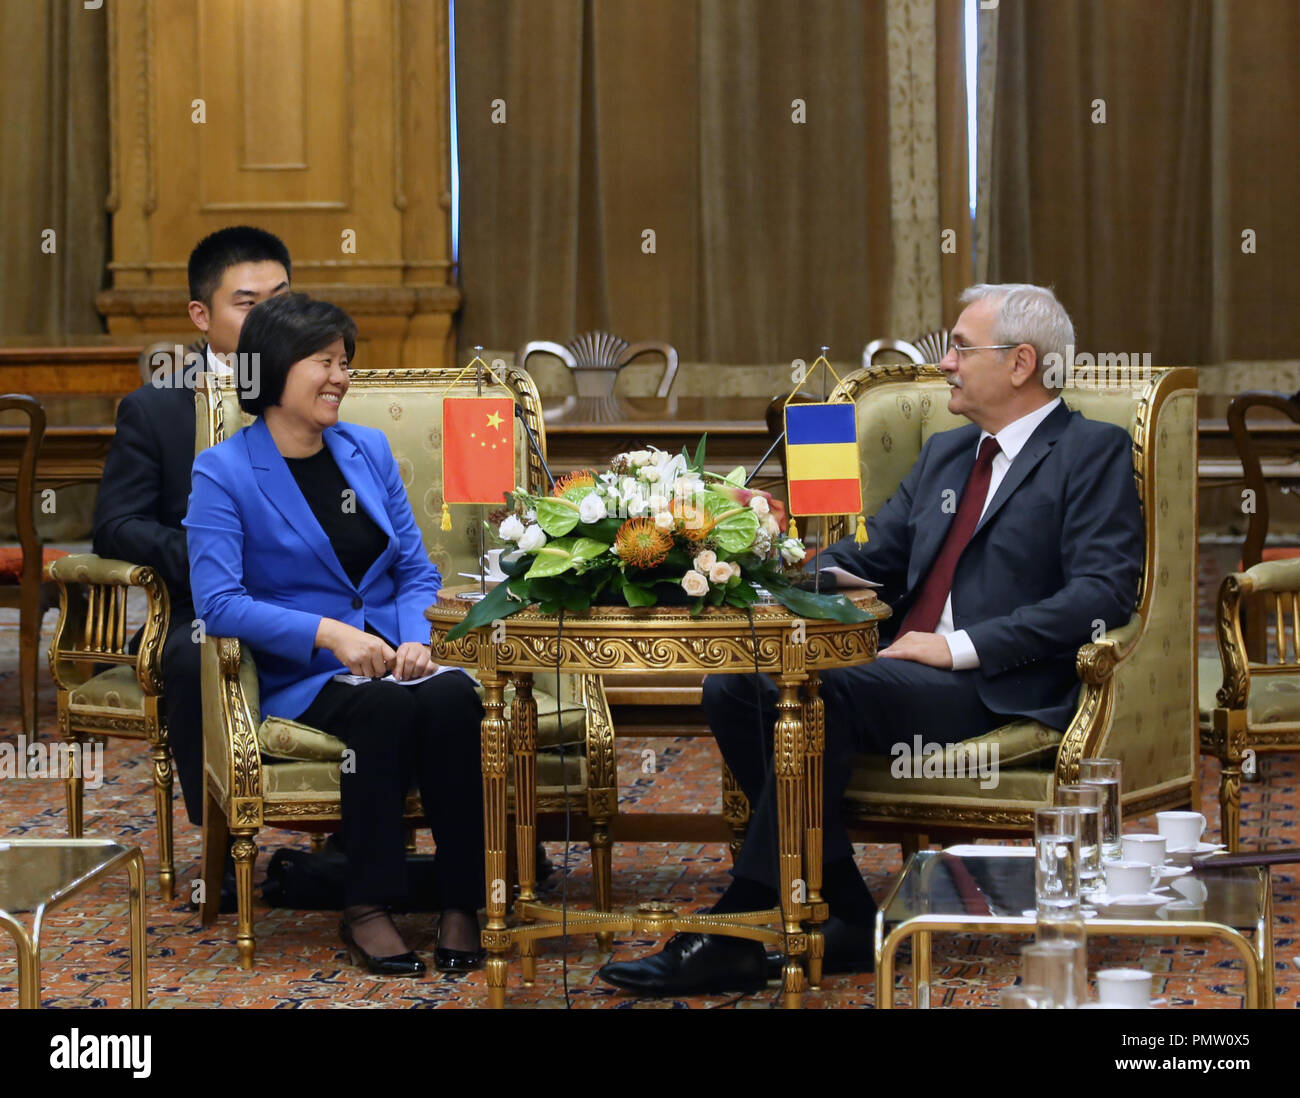 Bucharest, Romania. 17th Sep, 2018. Shen Yueyue (L), vice chairperson of the Standing Committee of the National People's Congress and president of the All-China Women's Federation, meets with Romanian Chamber of Deputies Speaker Liviu Dragnea in Bucharest, Romania, on Sept. 17, 2018. Credit: Chen Jin/Xinhua/Alamy Live News - Stock Image